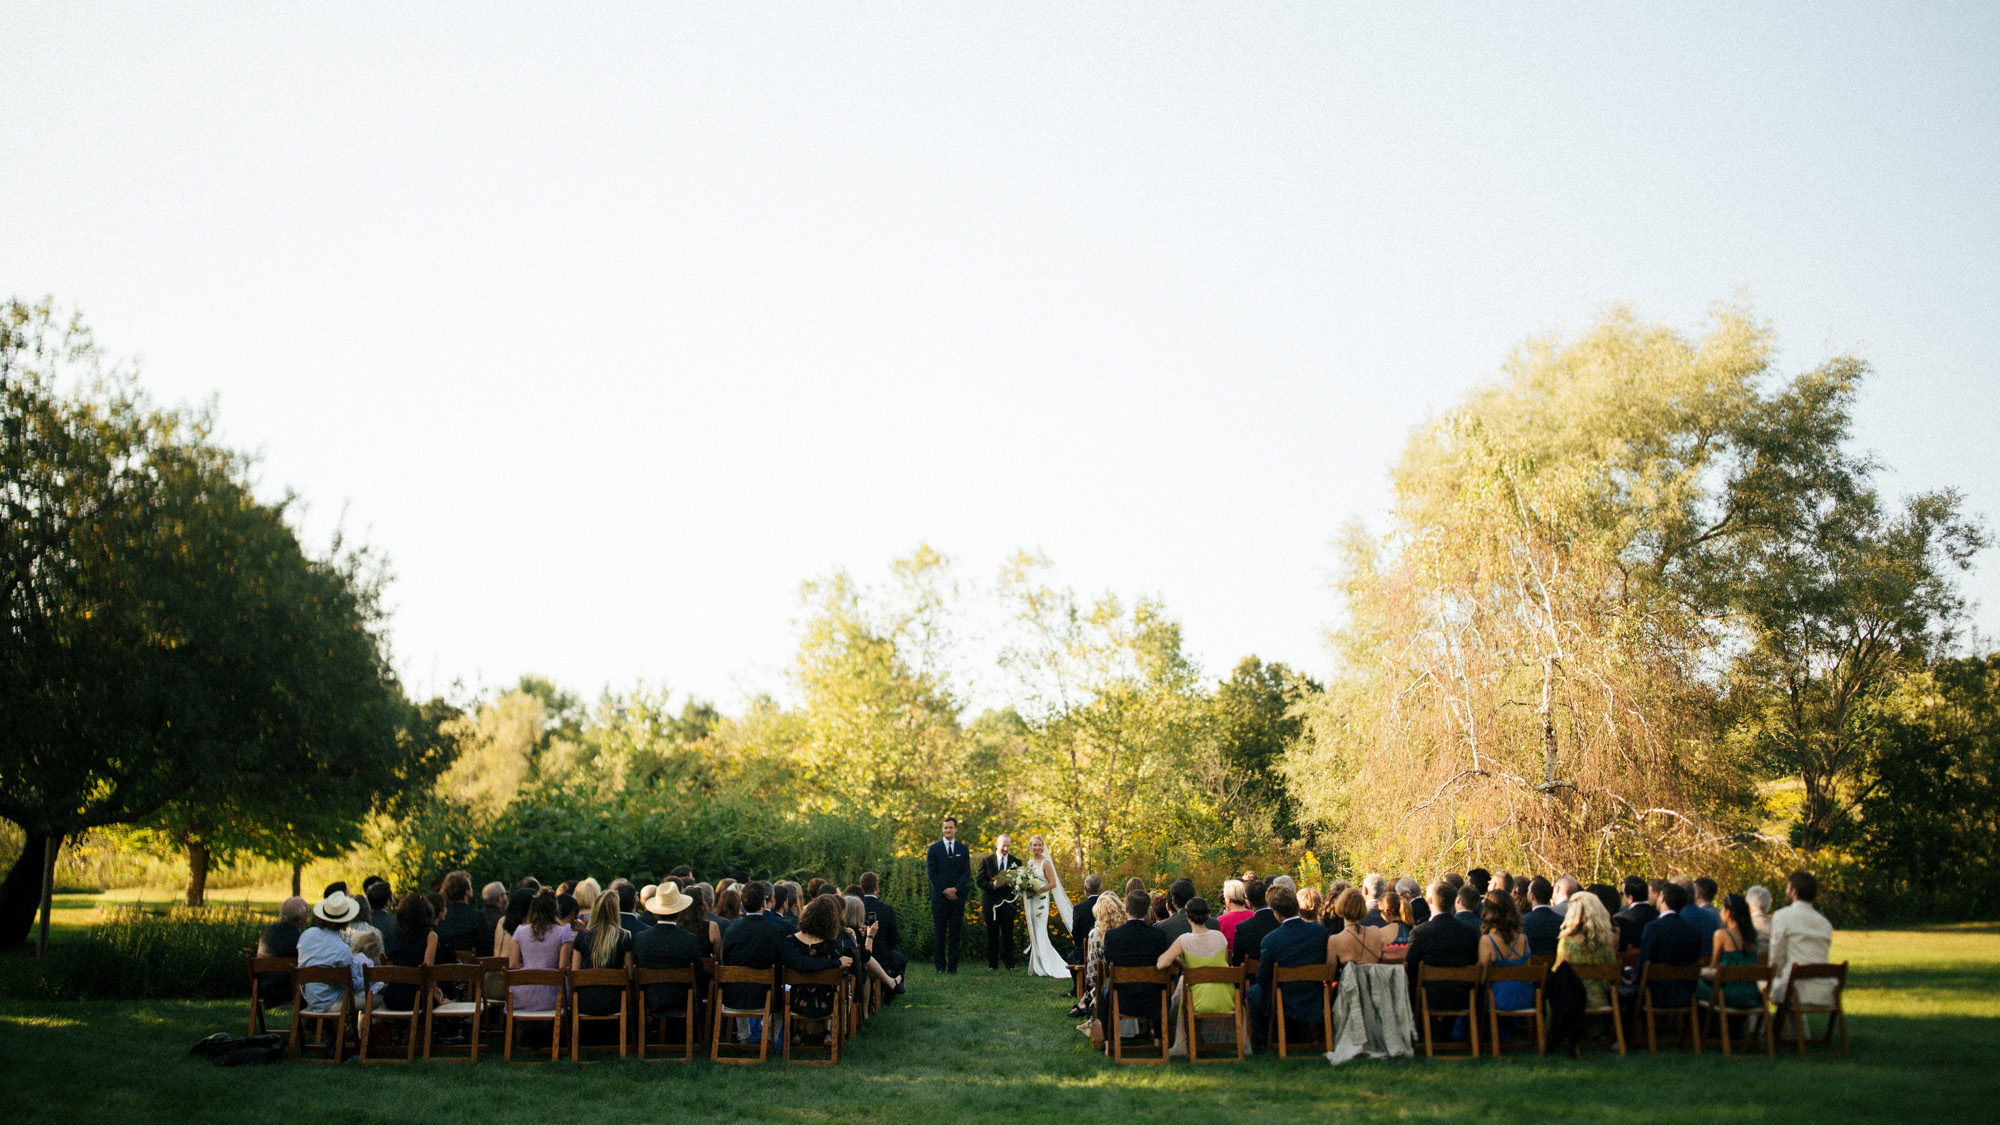 upstate_new_york_wedding_alec_vanderboom-0068.jpg